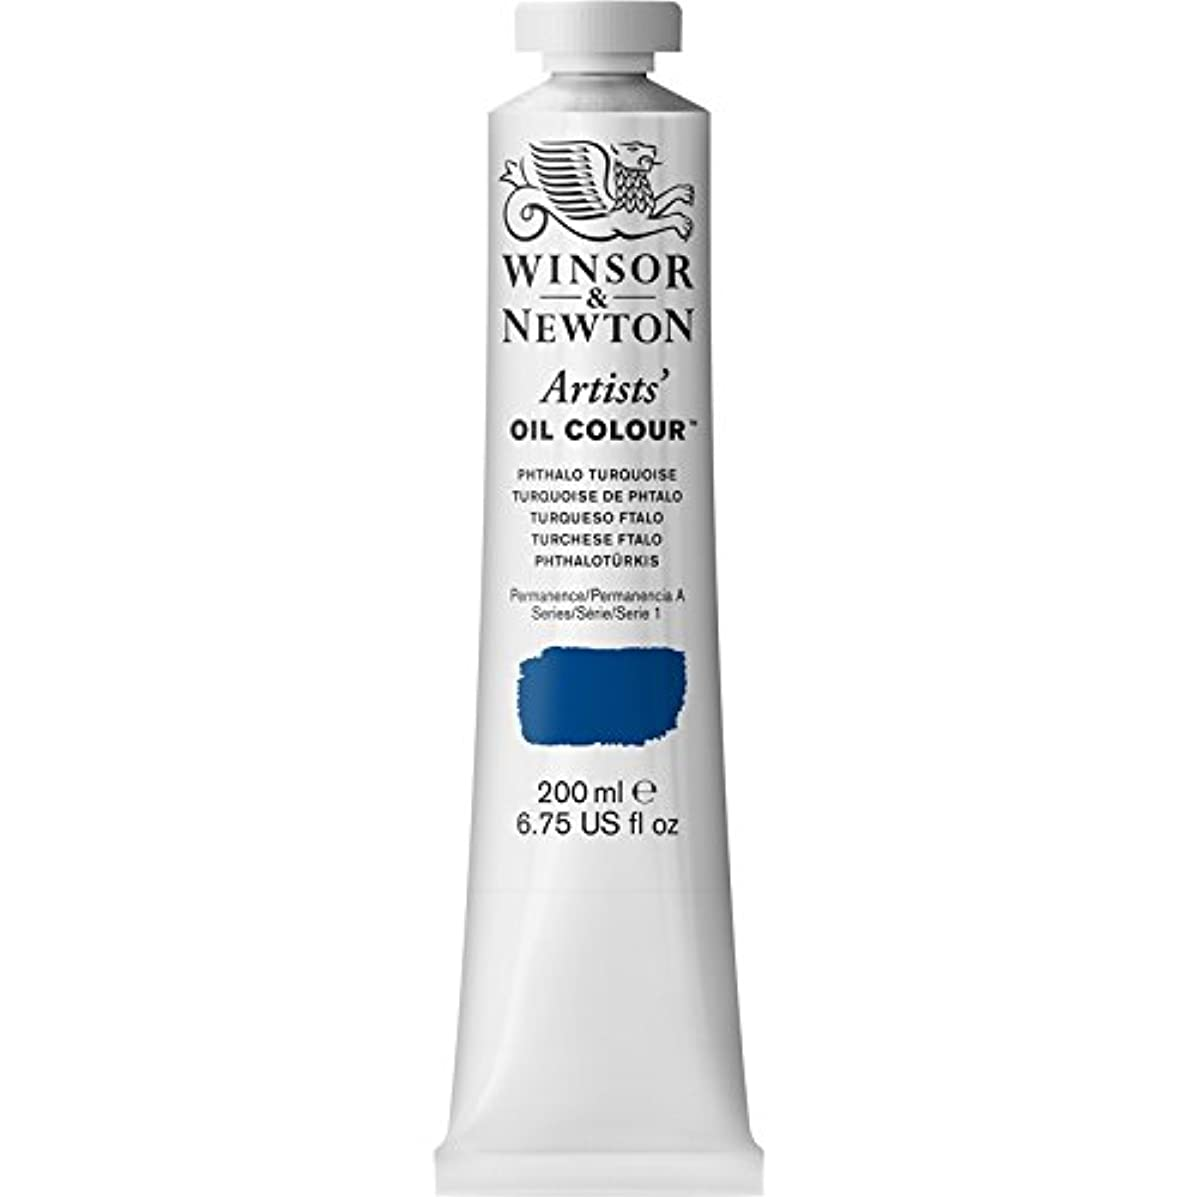 Winsor & Newton Artists' Oil Colour Paint, 200ml Tube, Phthalo Turquoise